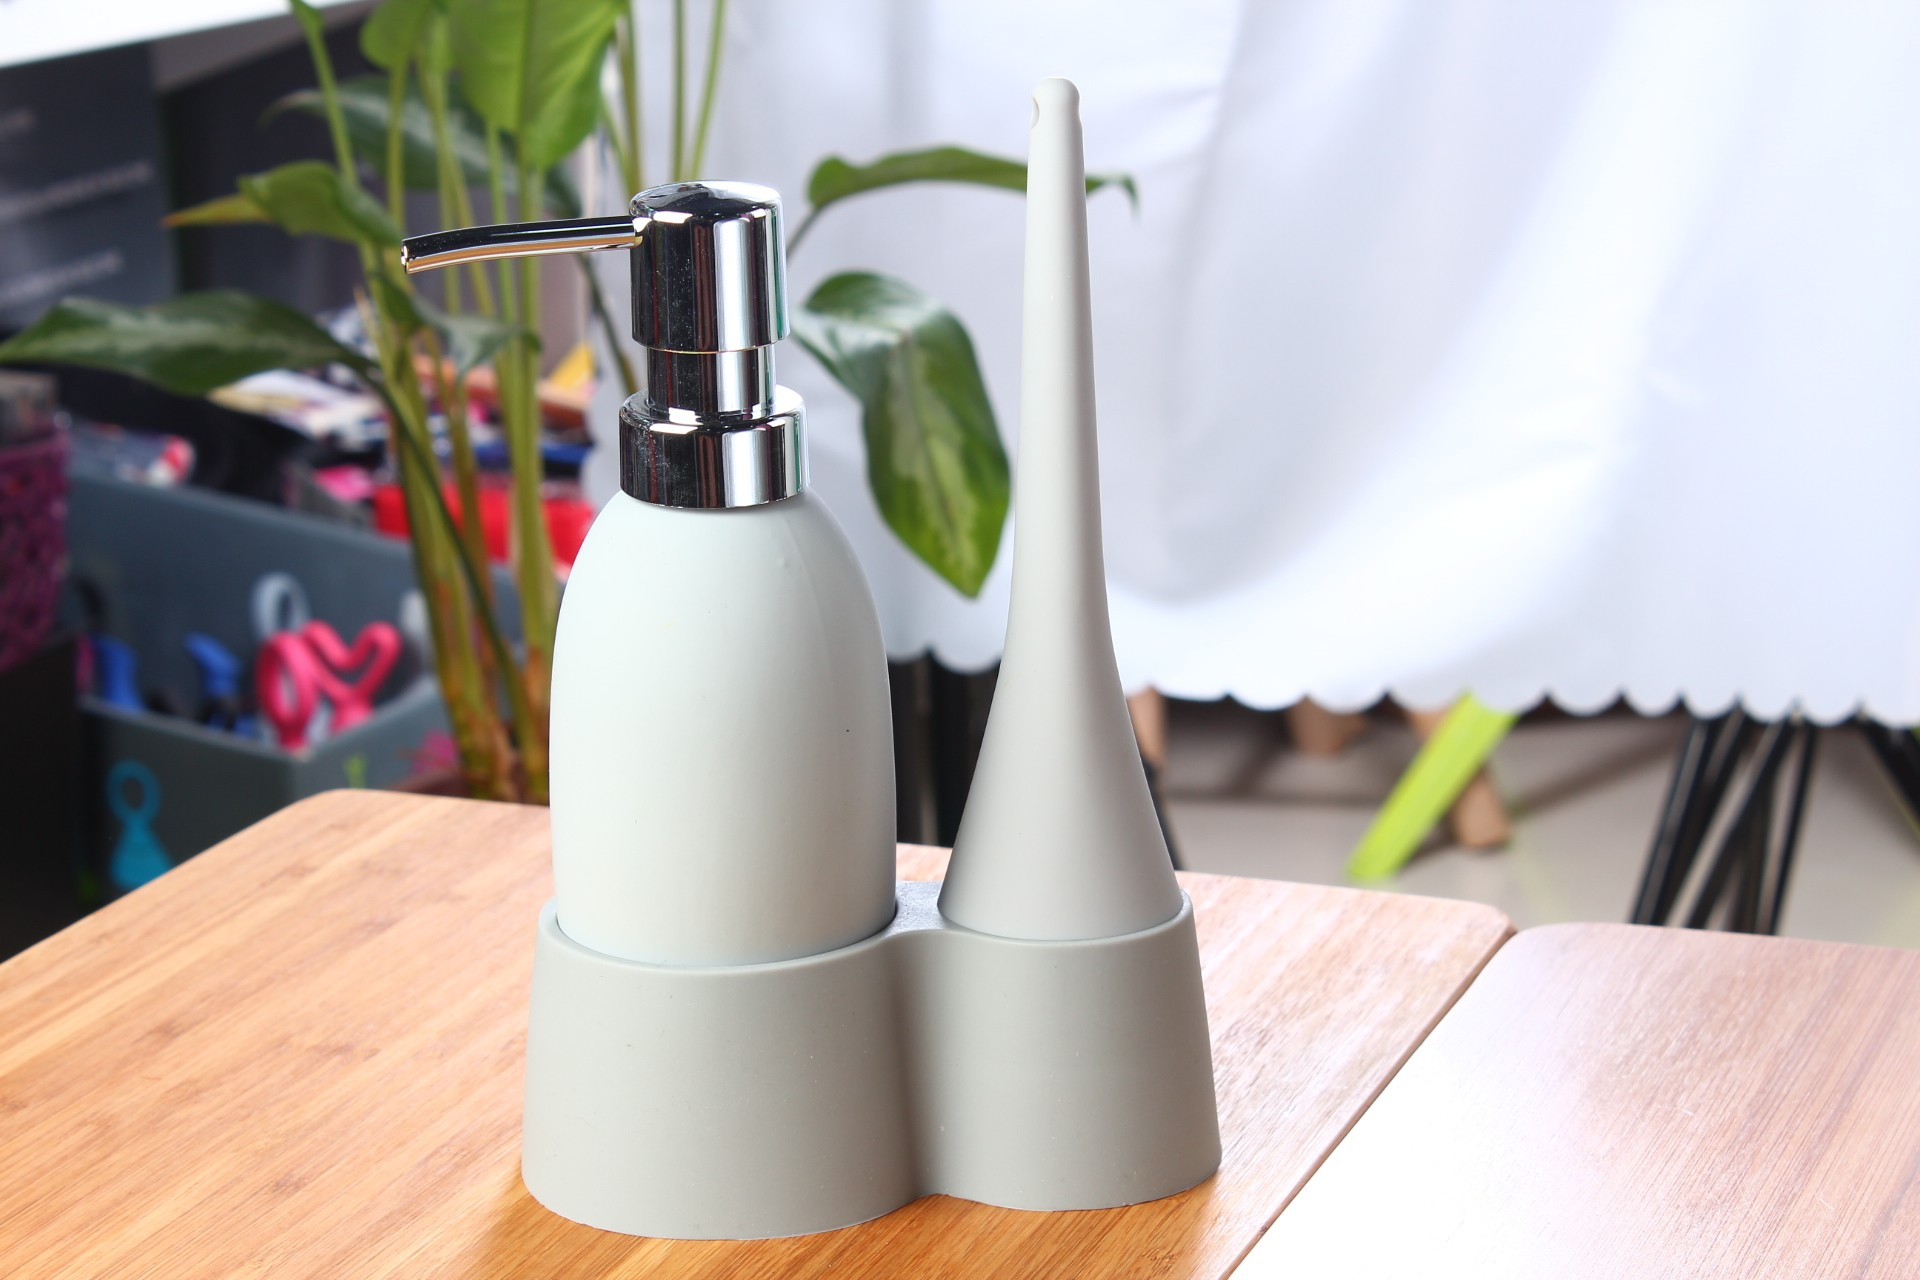 Flow 3-in-1 Soap Dispenser Wash Up Set with Base Tray in Gray (6 Dispensers/Lot)